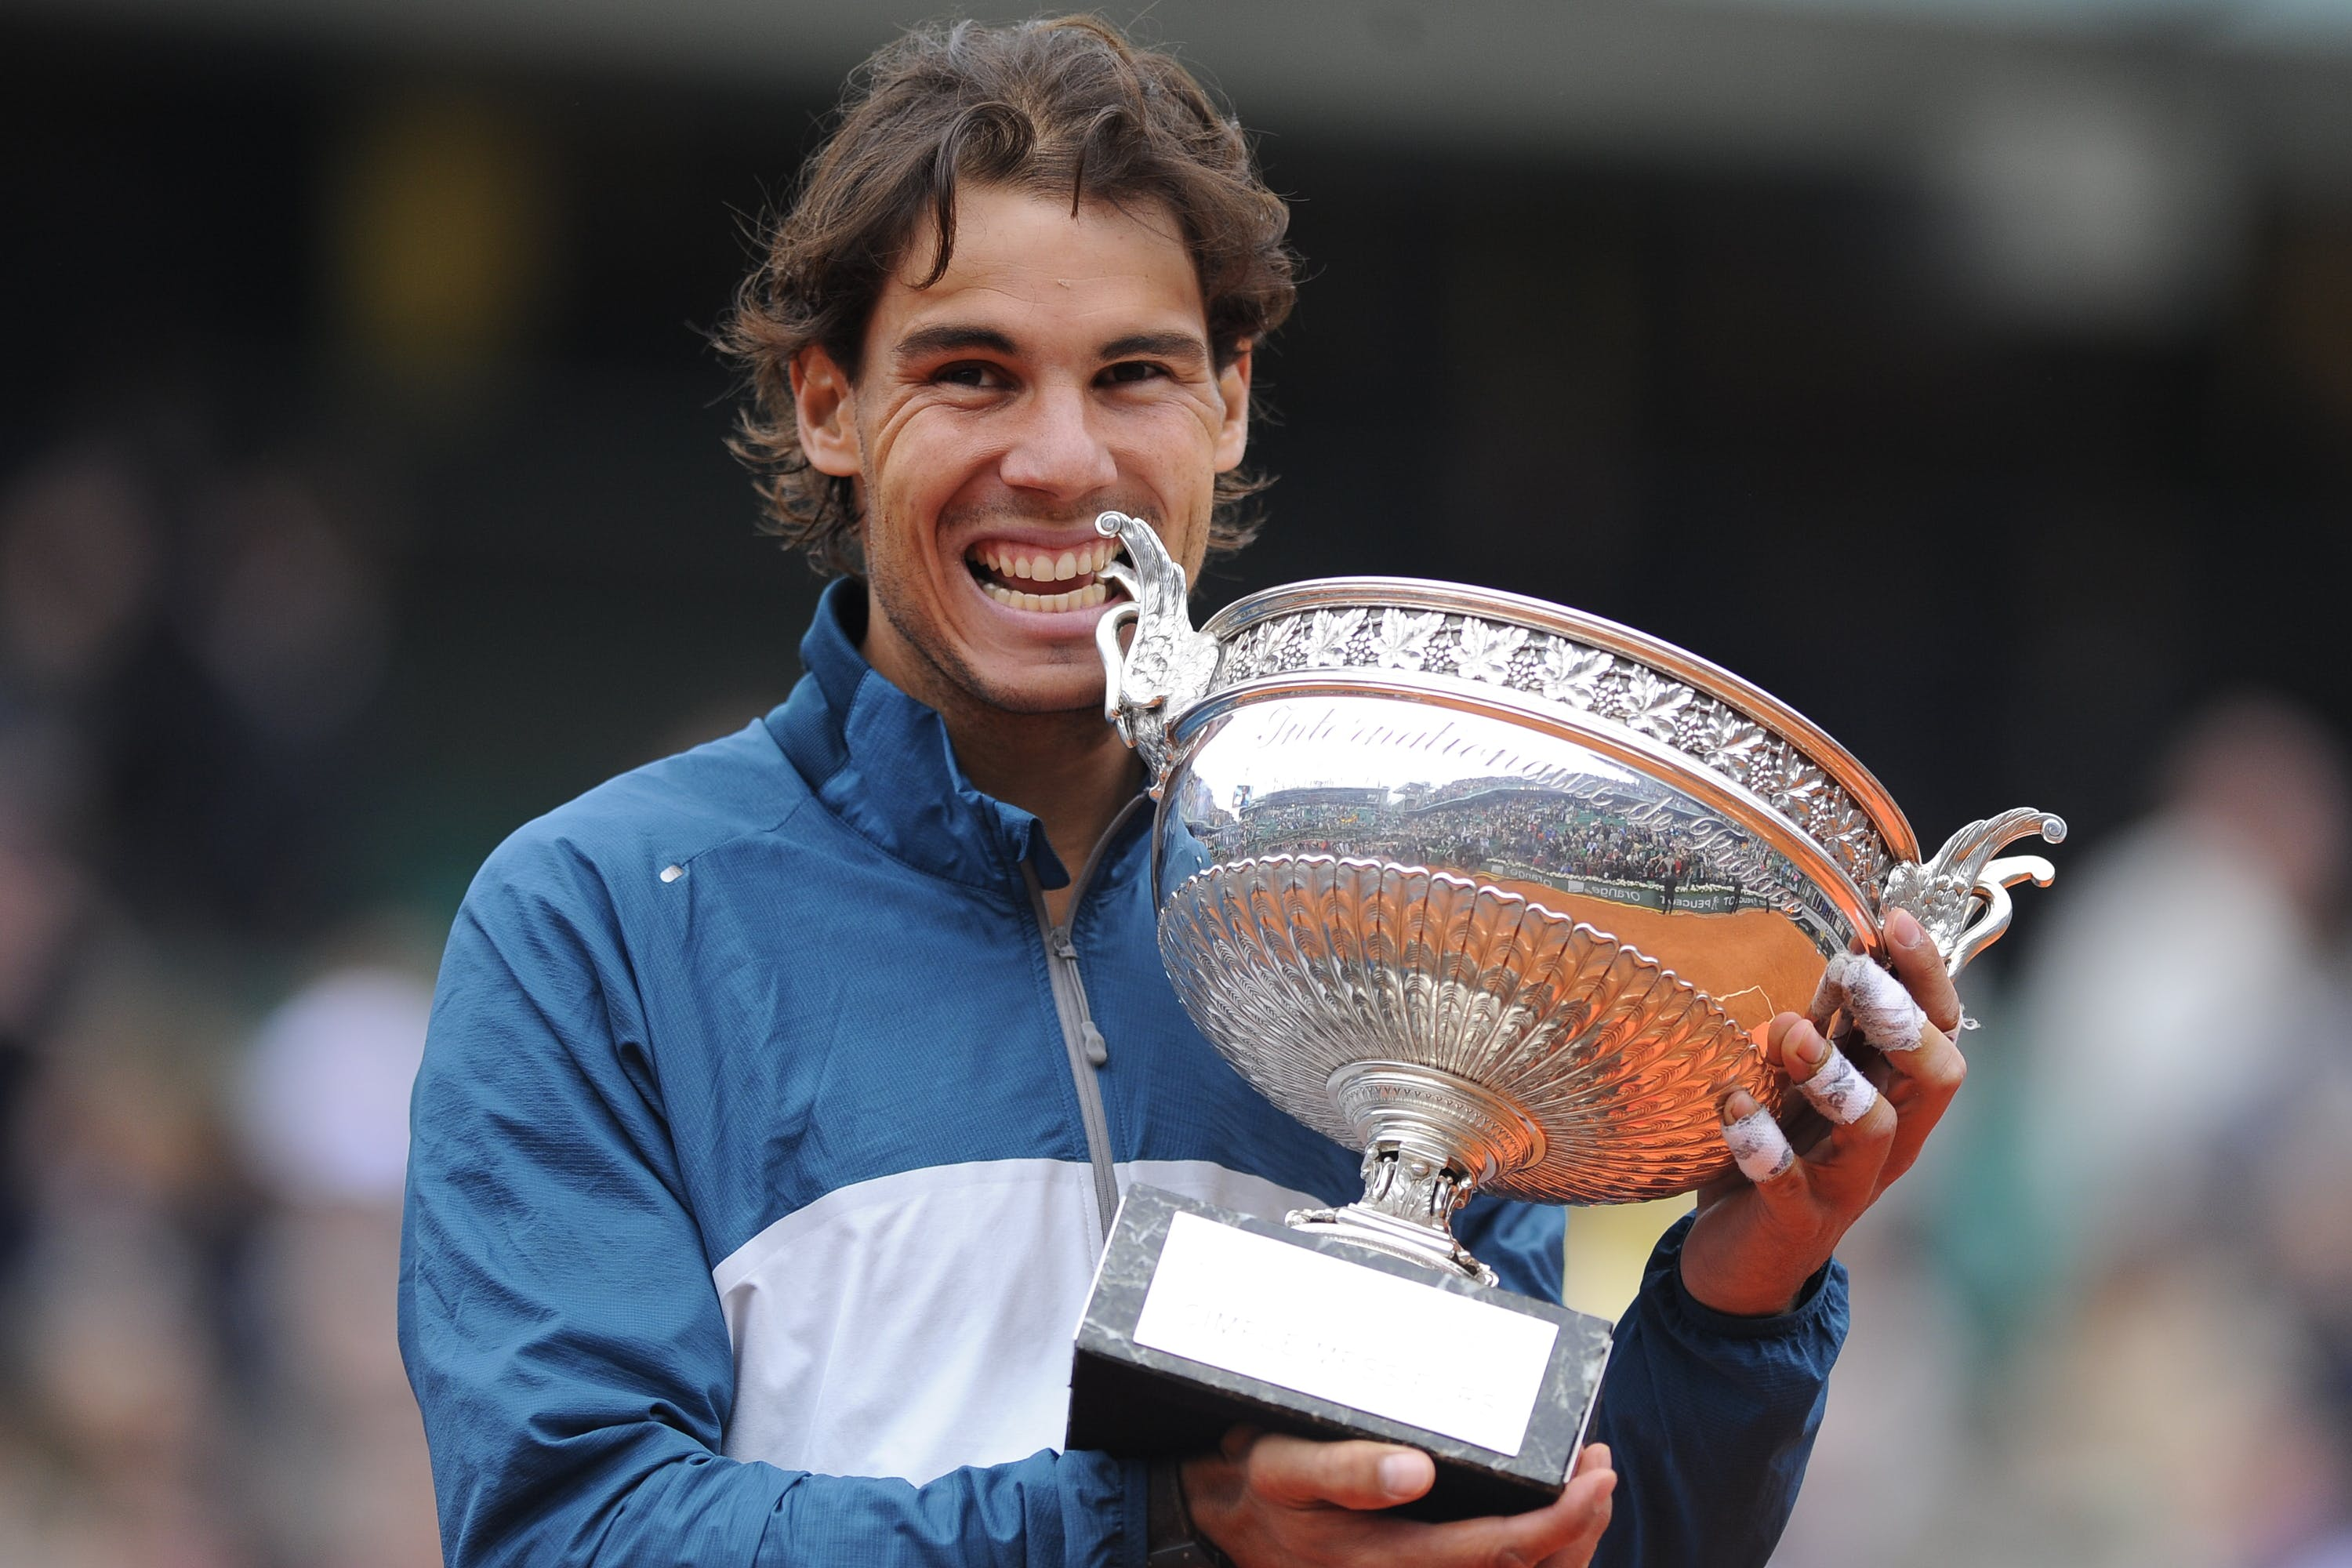 Rafael Nadal with the trophy at Roland-Garros 2013